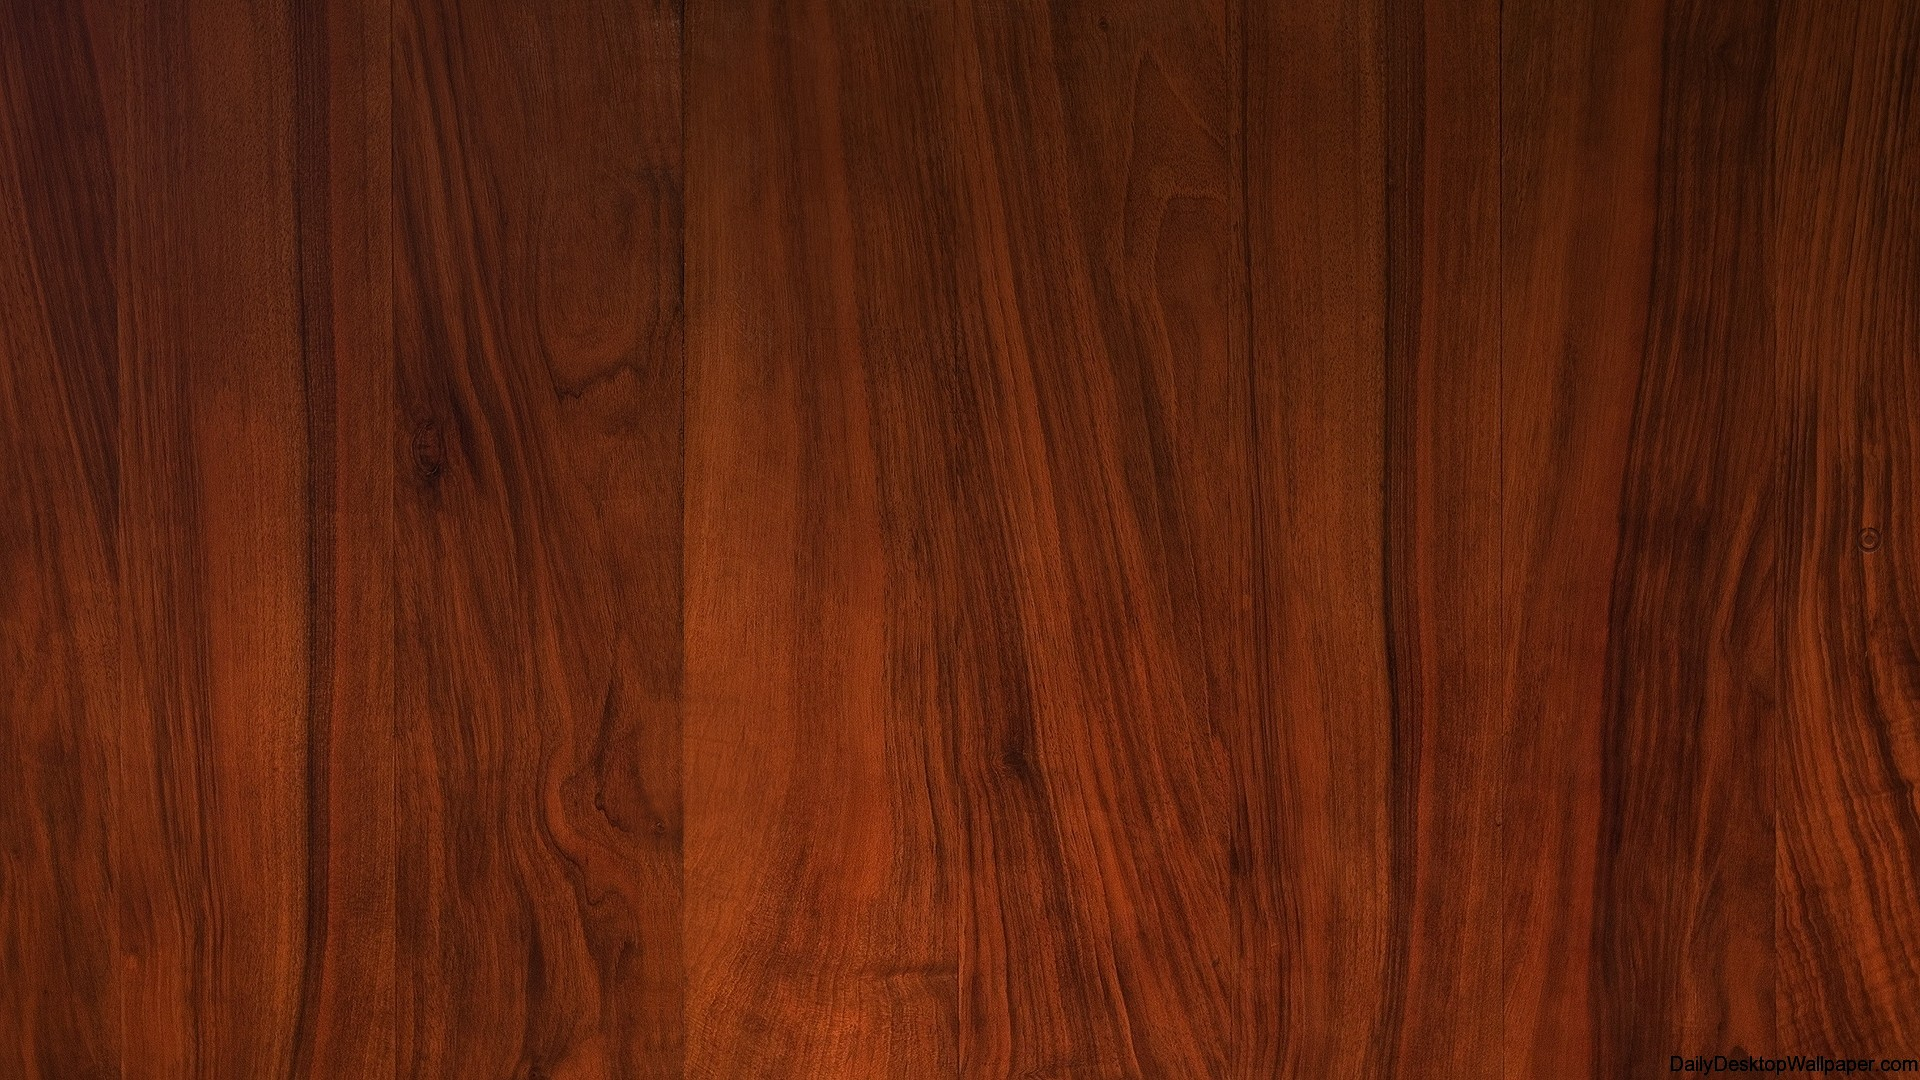 Wood OS X Wallpaper